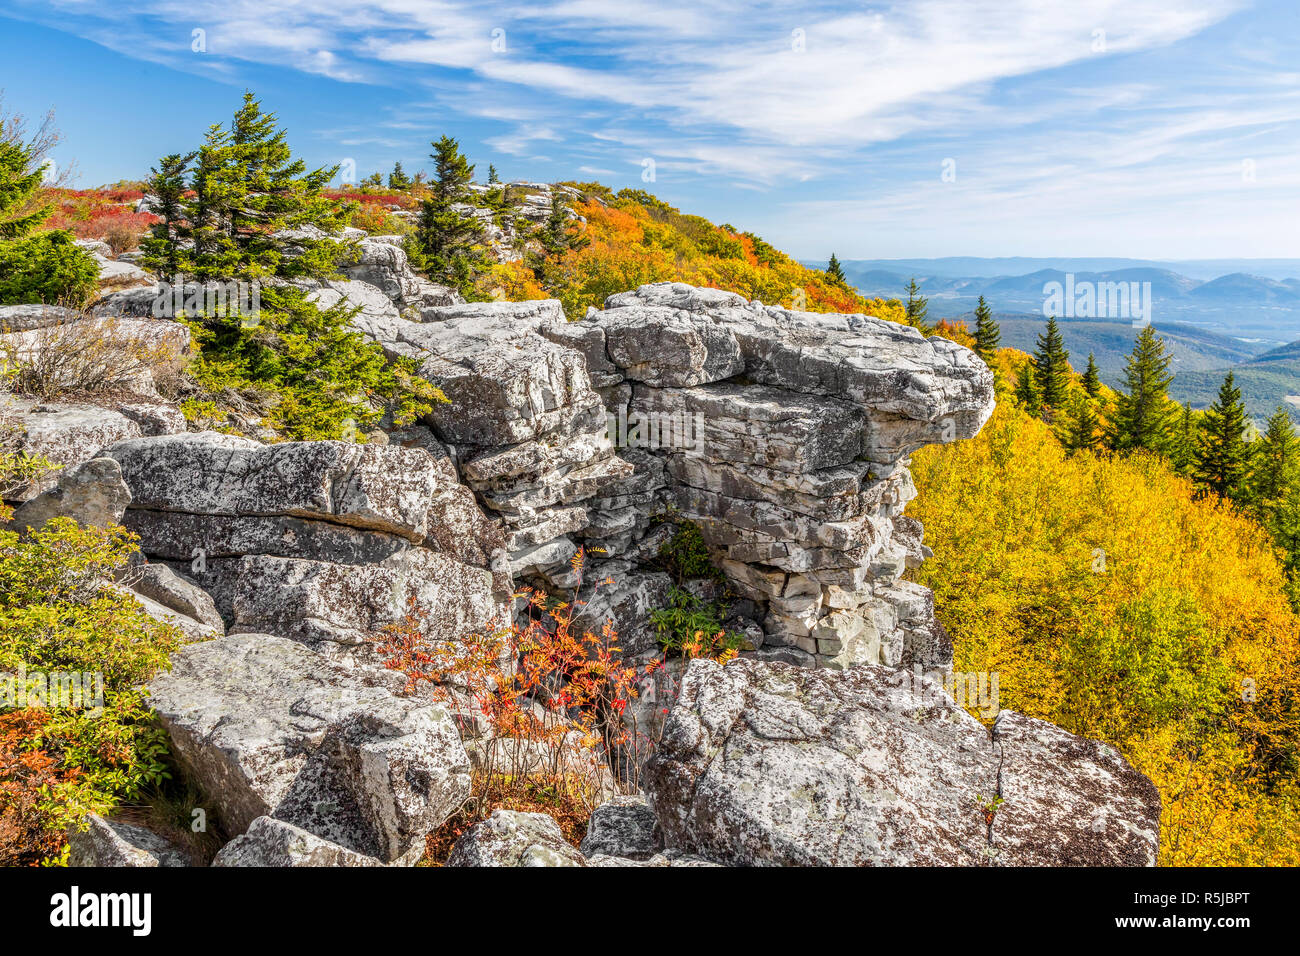 Colorful fall foliage adorns Bear Rocks at the Dolly Sods Wilderness in the Allegheny Mountains of West Virginia. - Stock Image